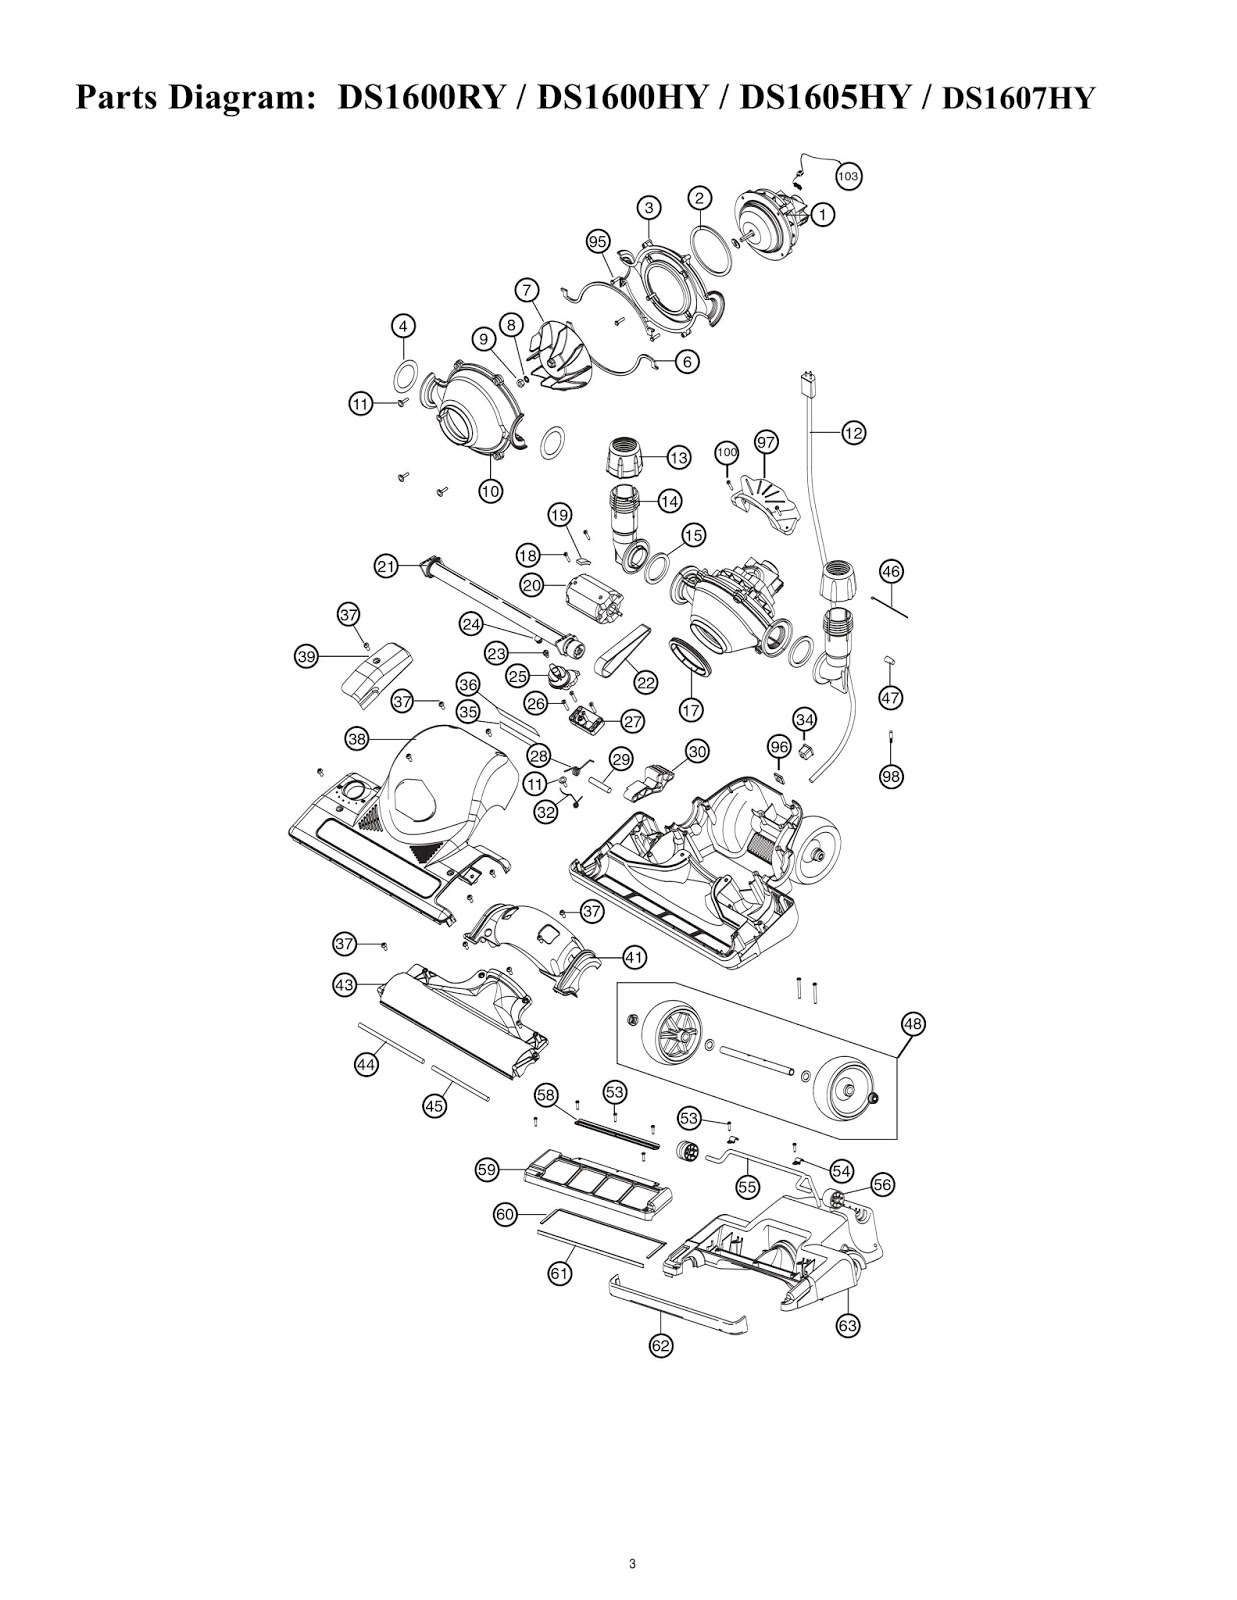 Wiring Diagram For Bissell Vacuum Cleaner Wiring Switch